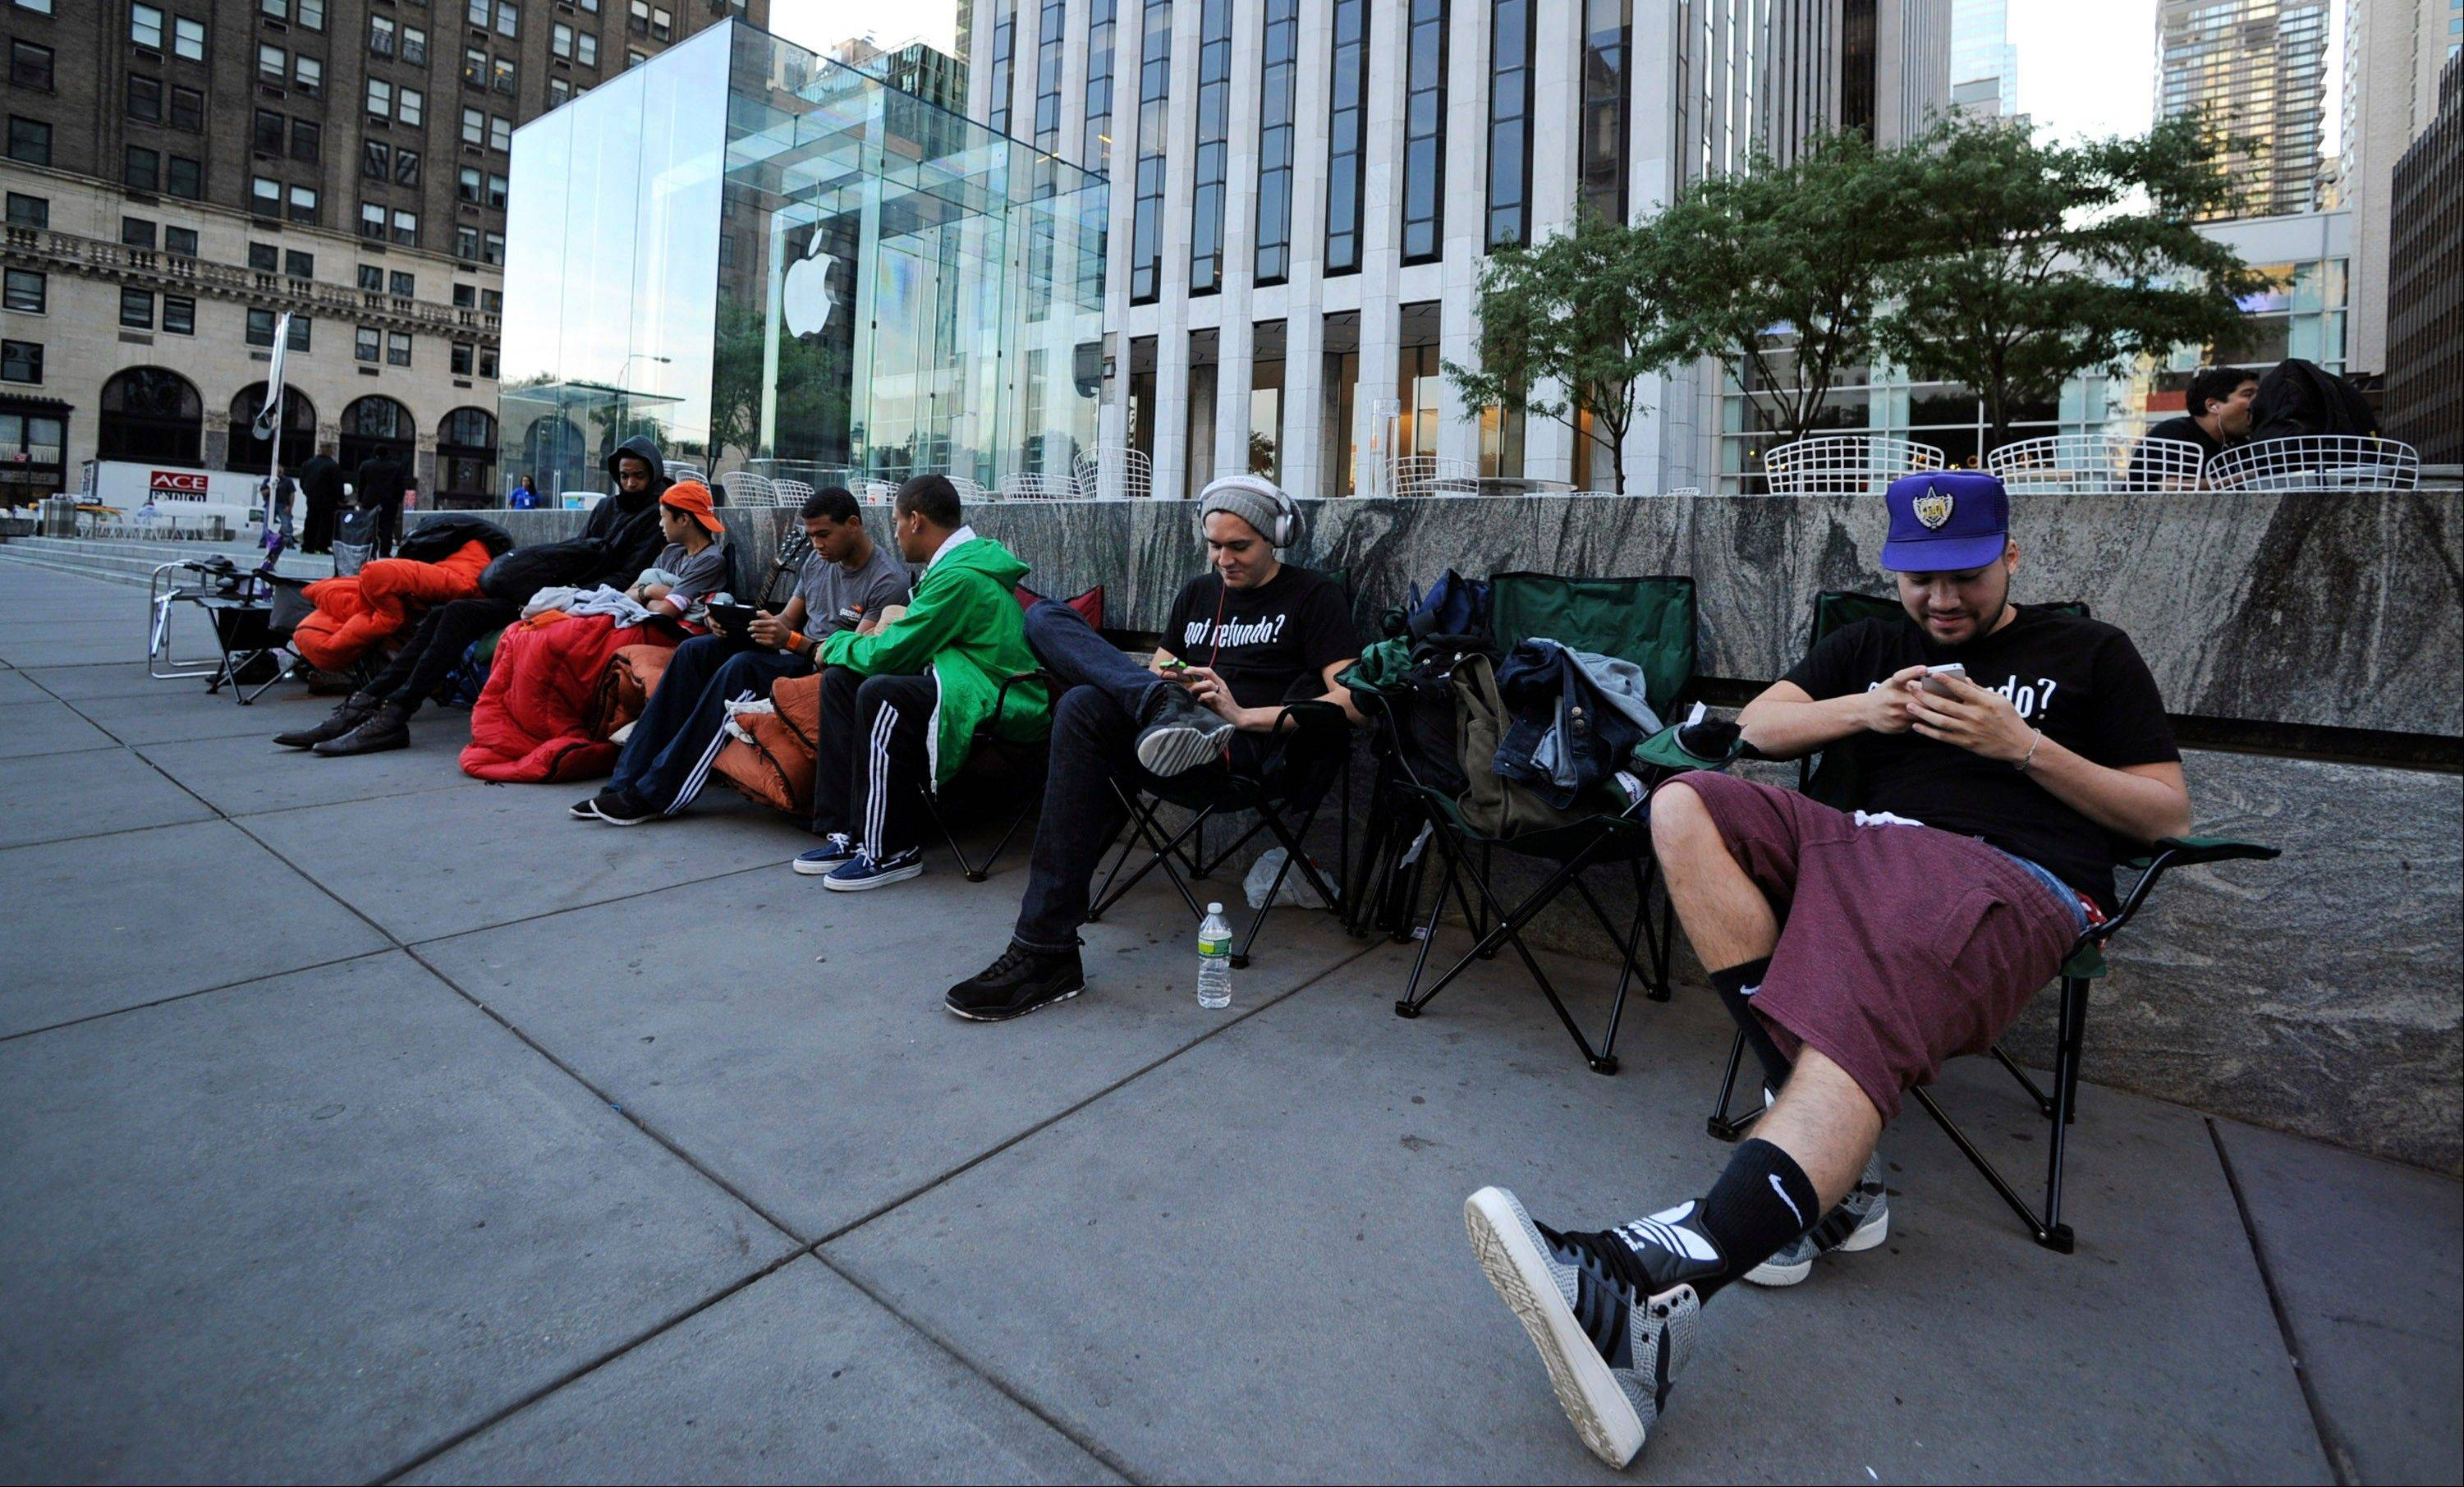 People line up in front of the Apple Inc. store on Fifth Avenue in advance of the sale of the iPhone 5 in New York, U.S. Monday.